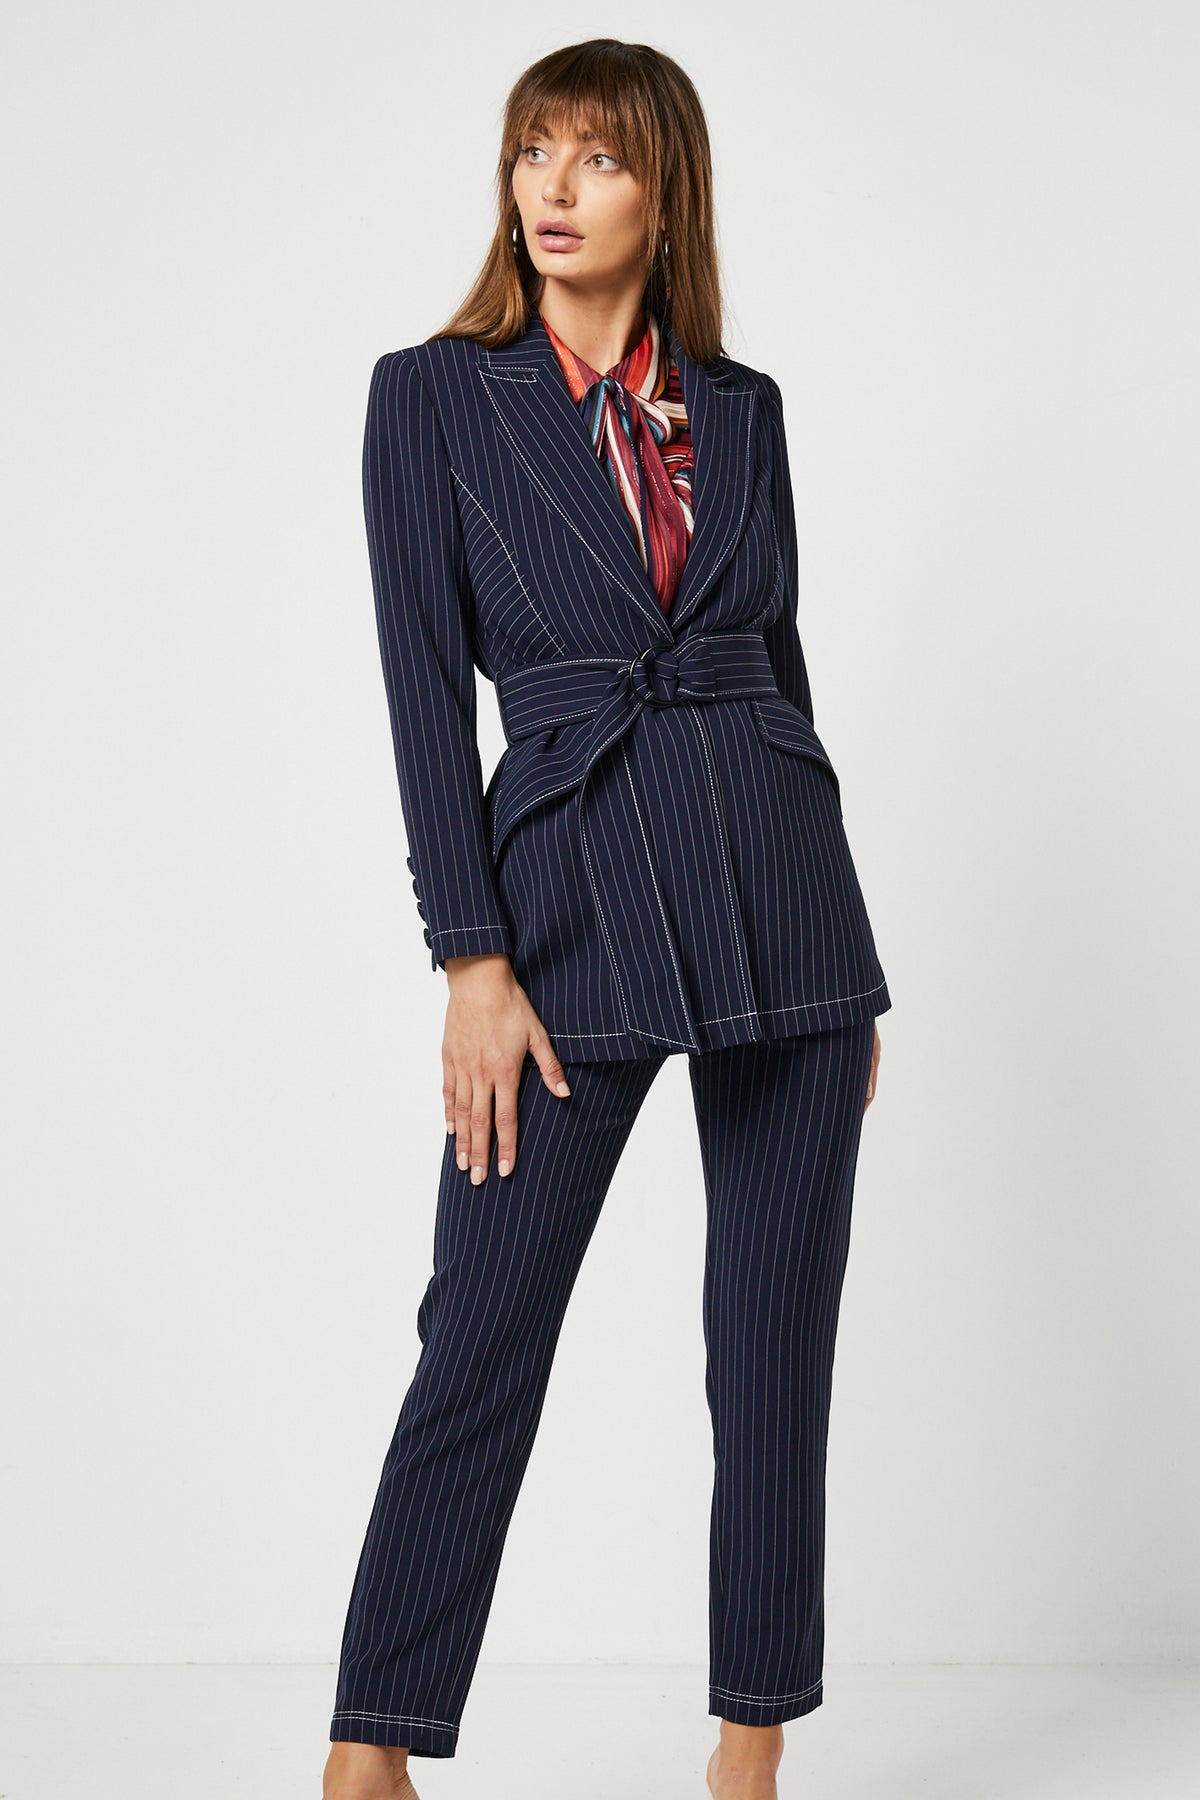 LADY BLAZER & PANT SET